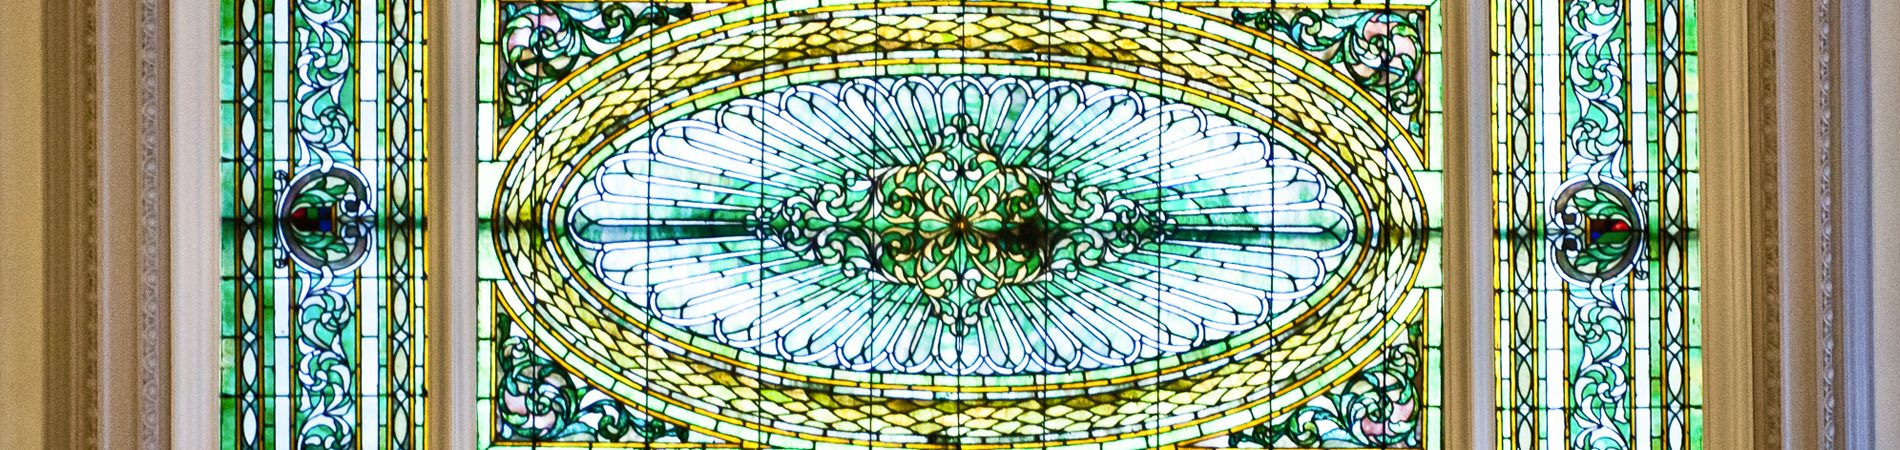 stain glass ceiling in the menger lobby